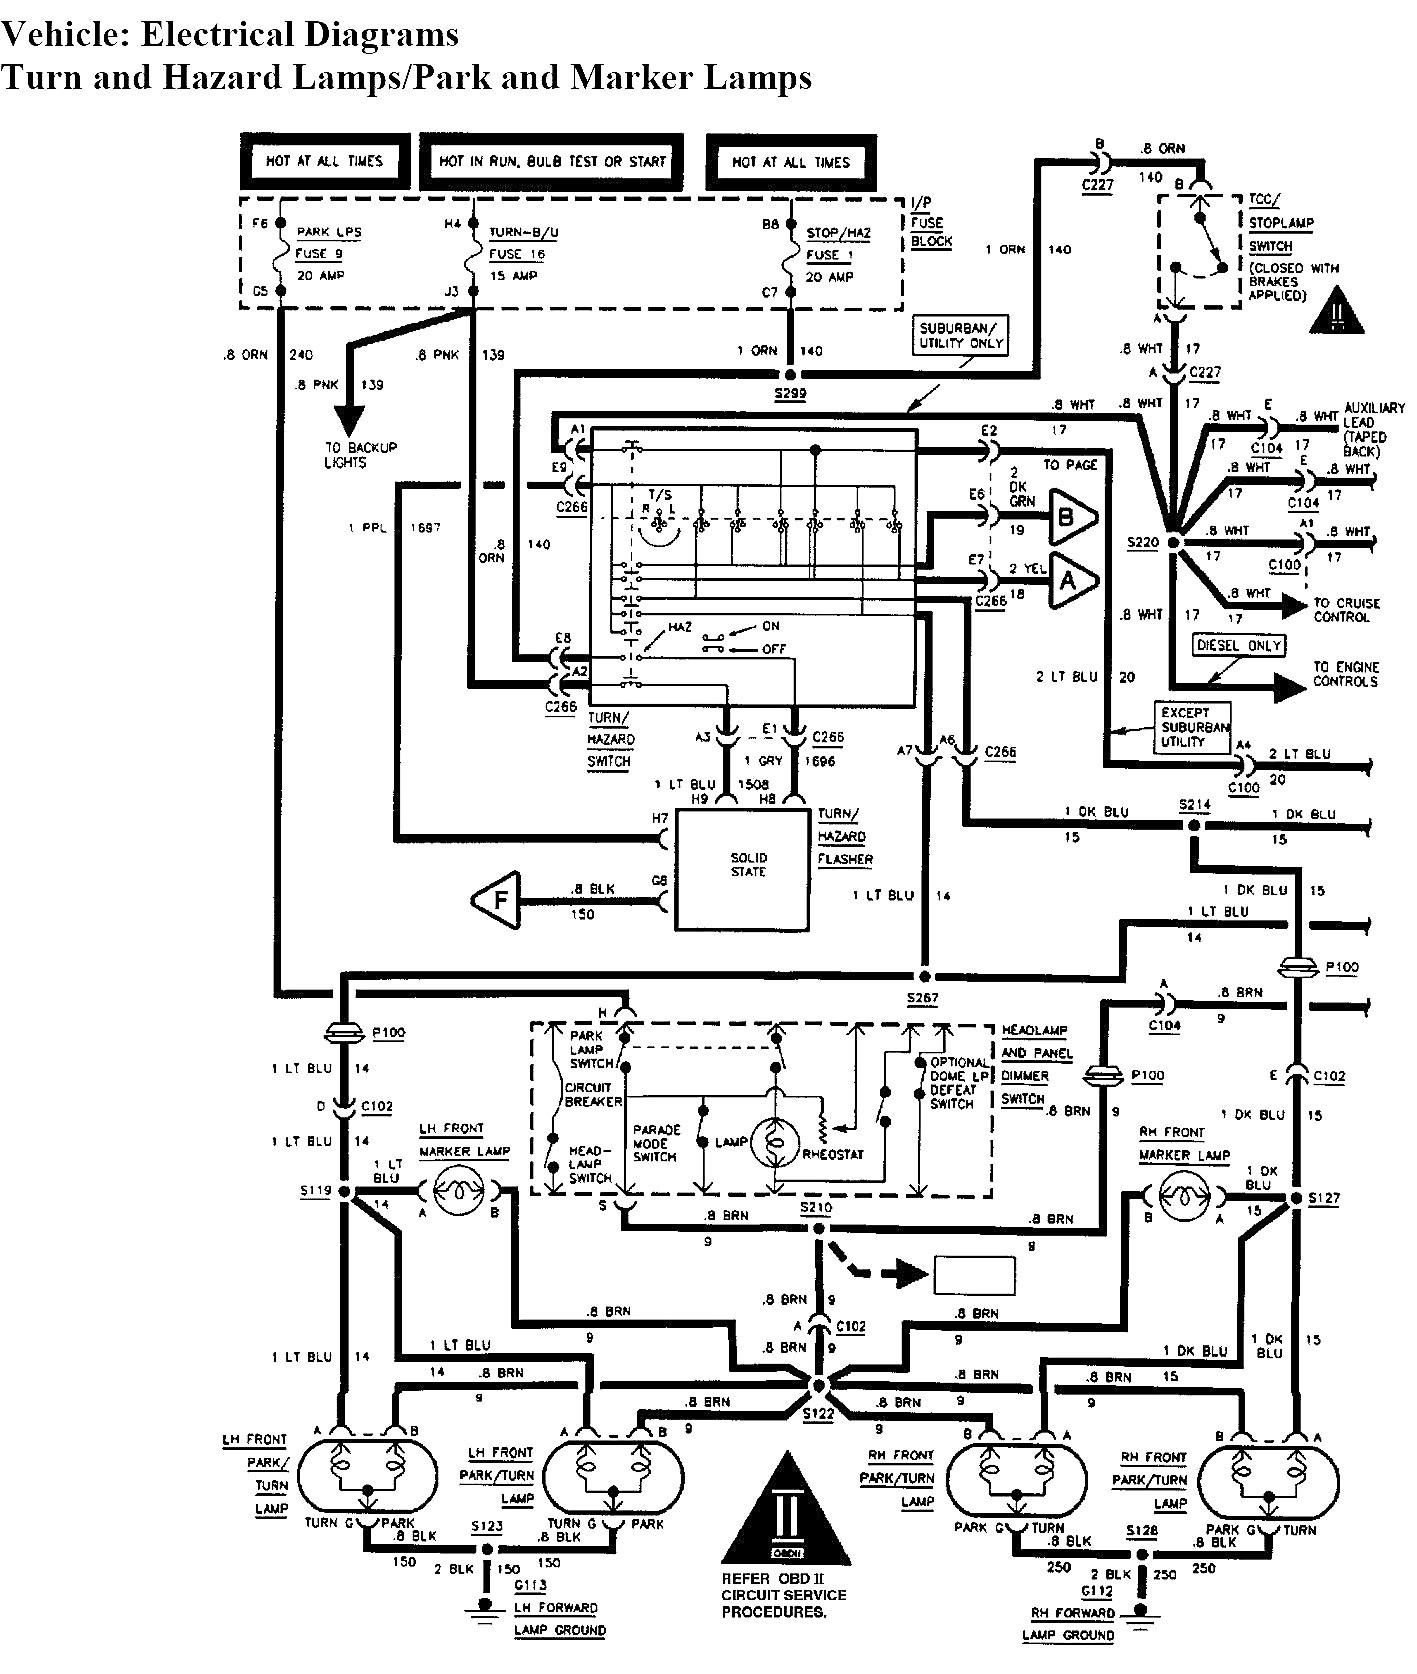 hight resolution of 2006 silverado tail light wiring diagram explore schematic tail light wiring diagram chevy chevy colorado